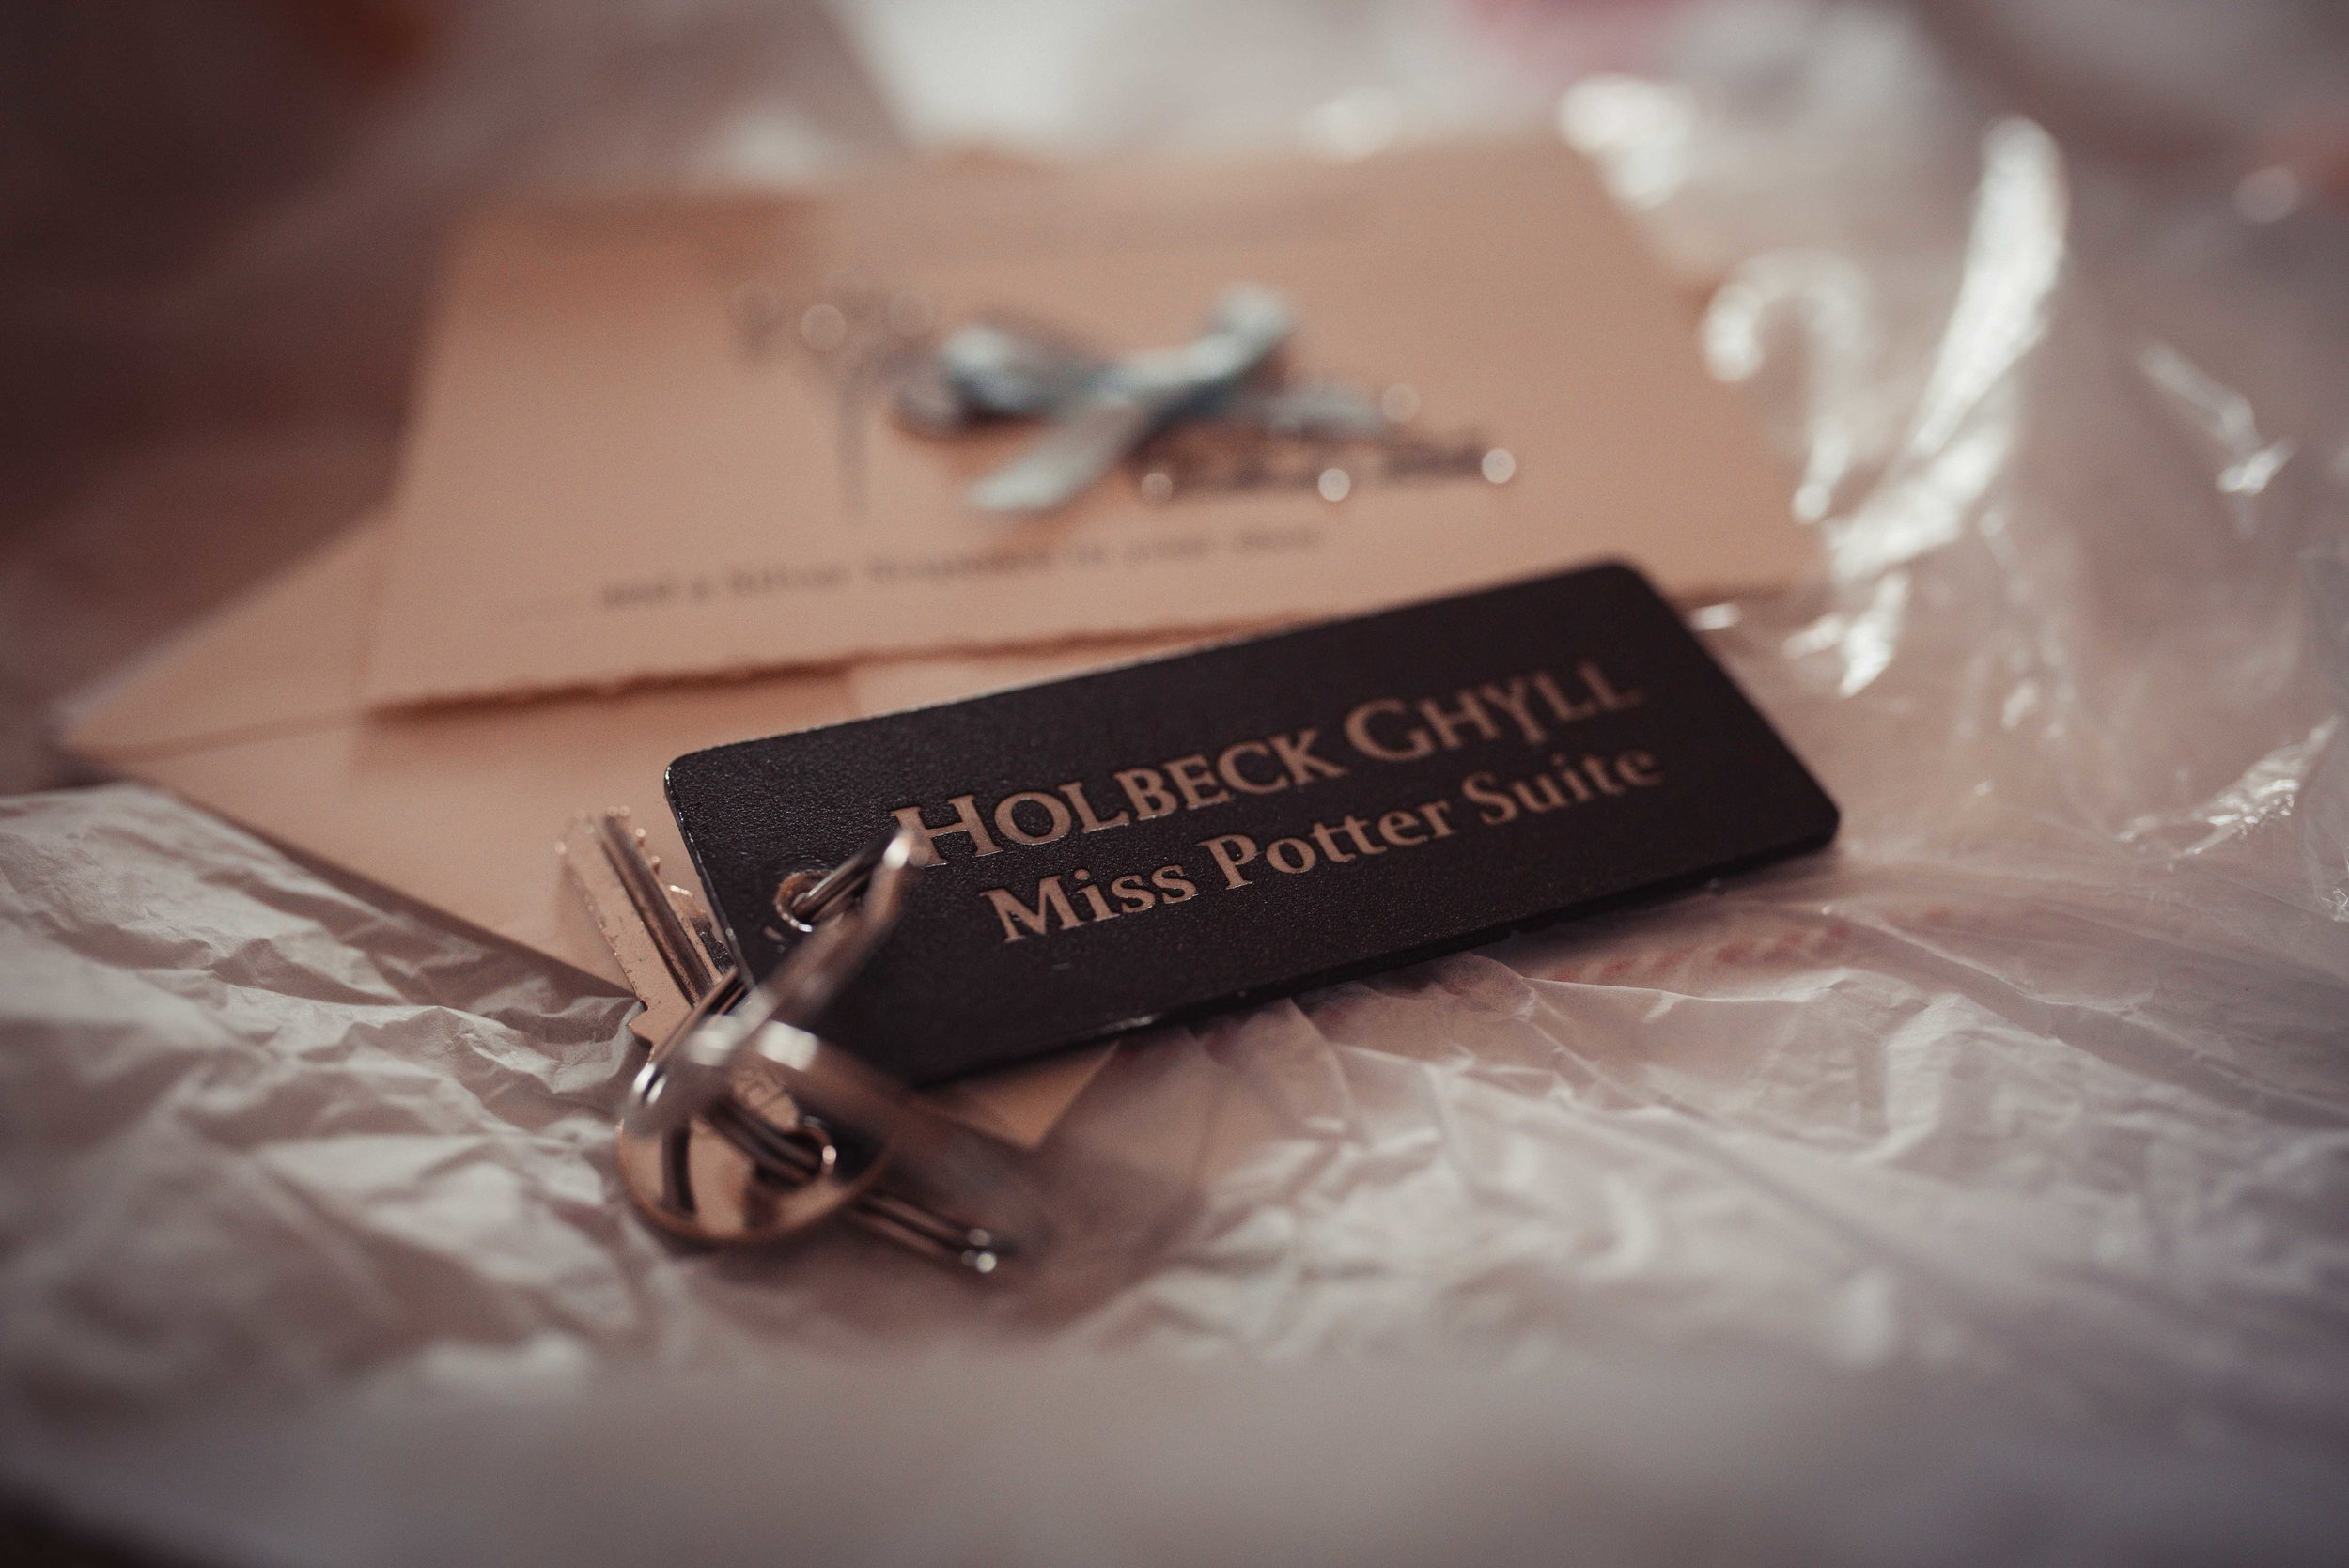 Close up of the key to the Miss Potter Suite